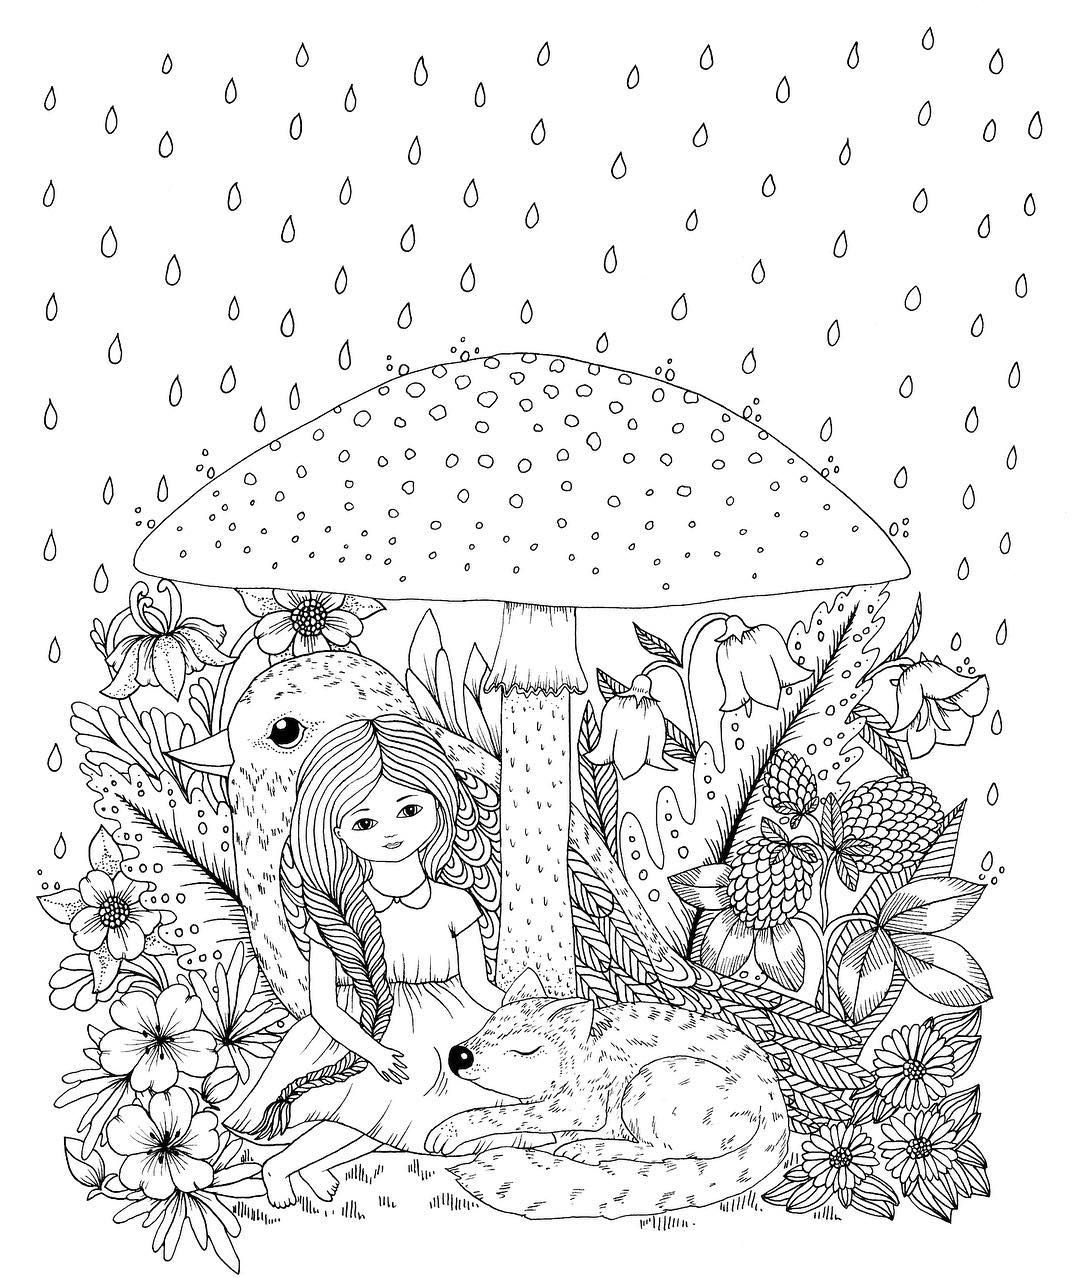 Vivi And Friends From Upcoming Coloringbook Vivi Soker En Van Release In The End Of October Mariatr Fairy Coloring Pages Coloring Pages Cool Coloring Pages